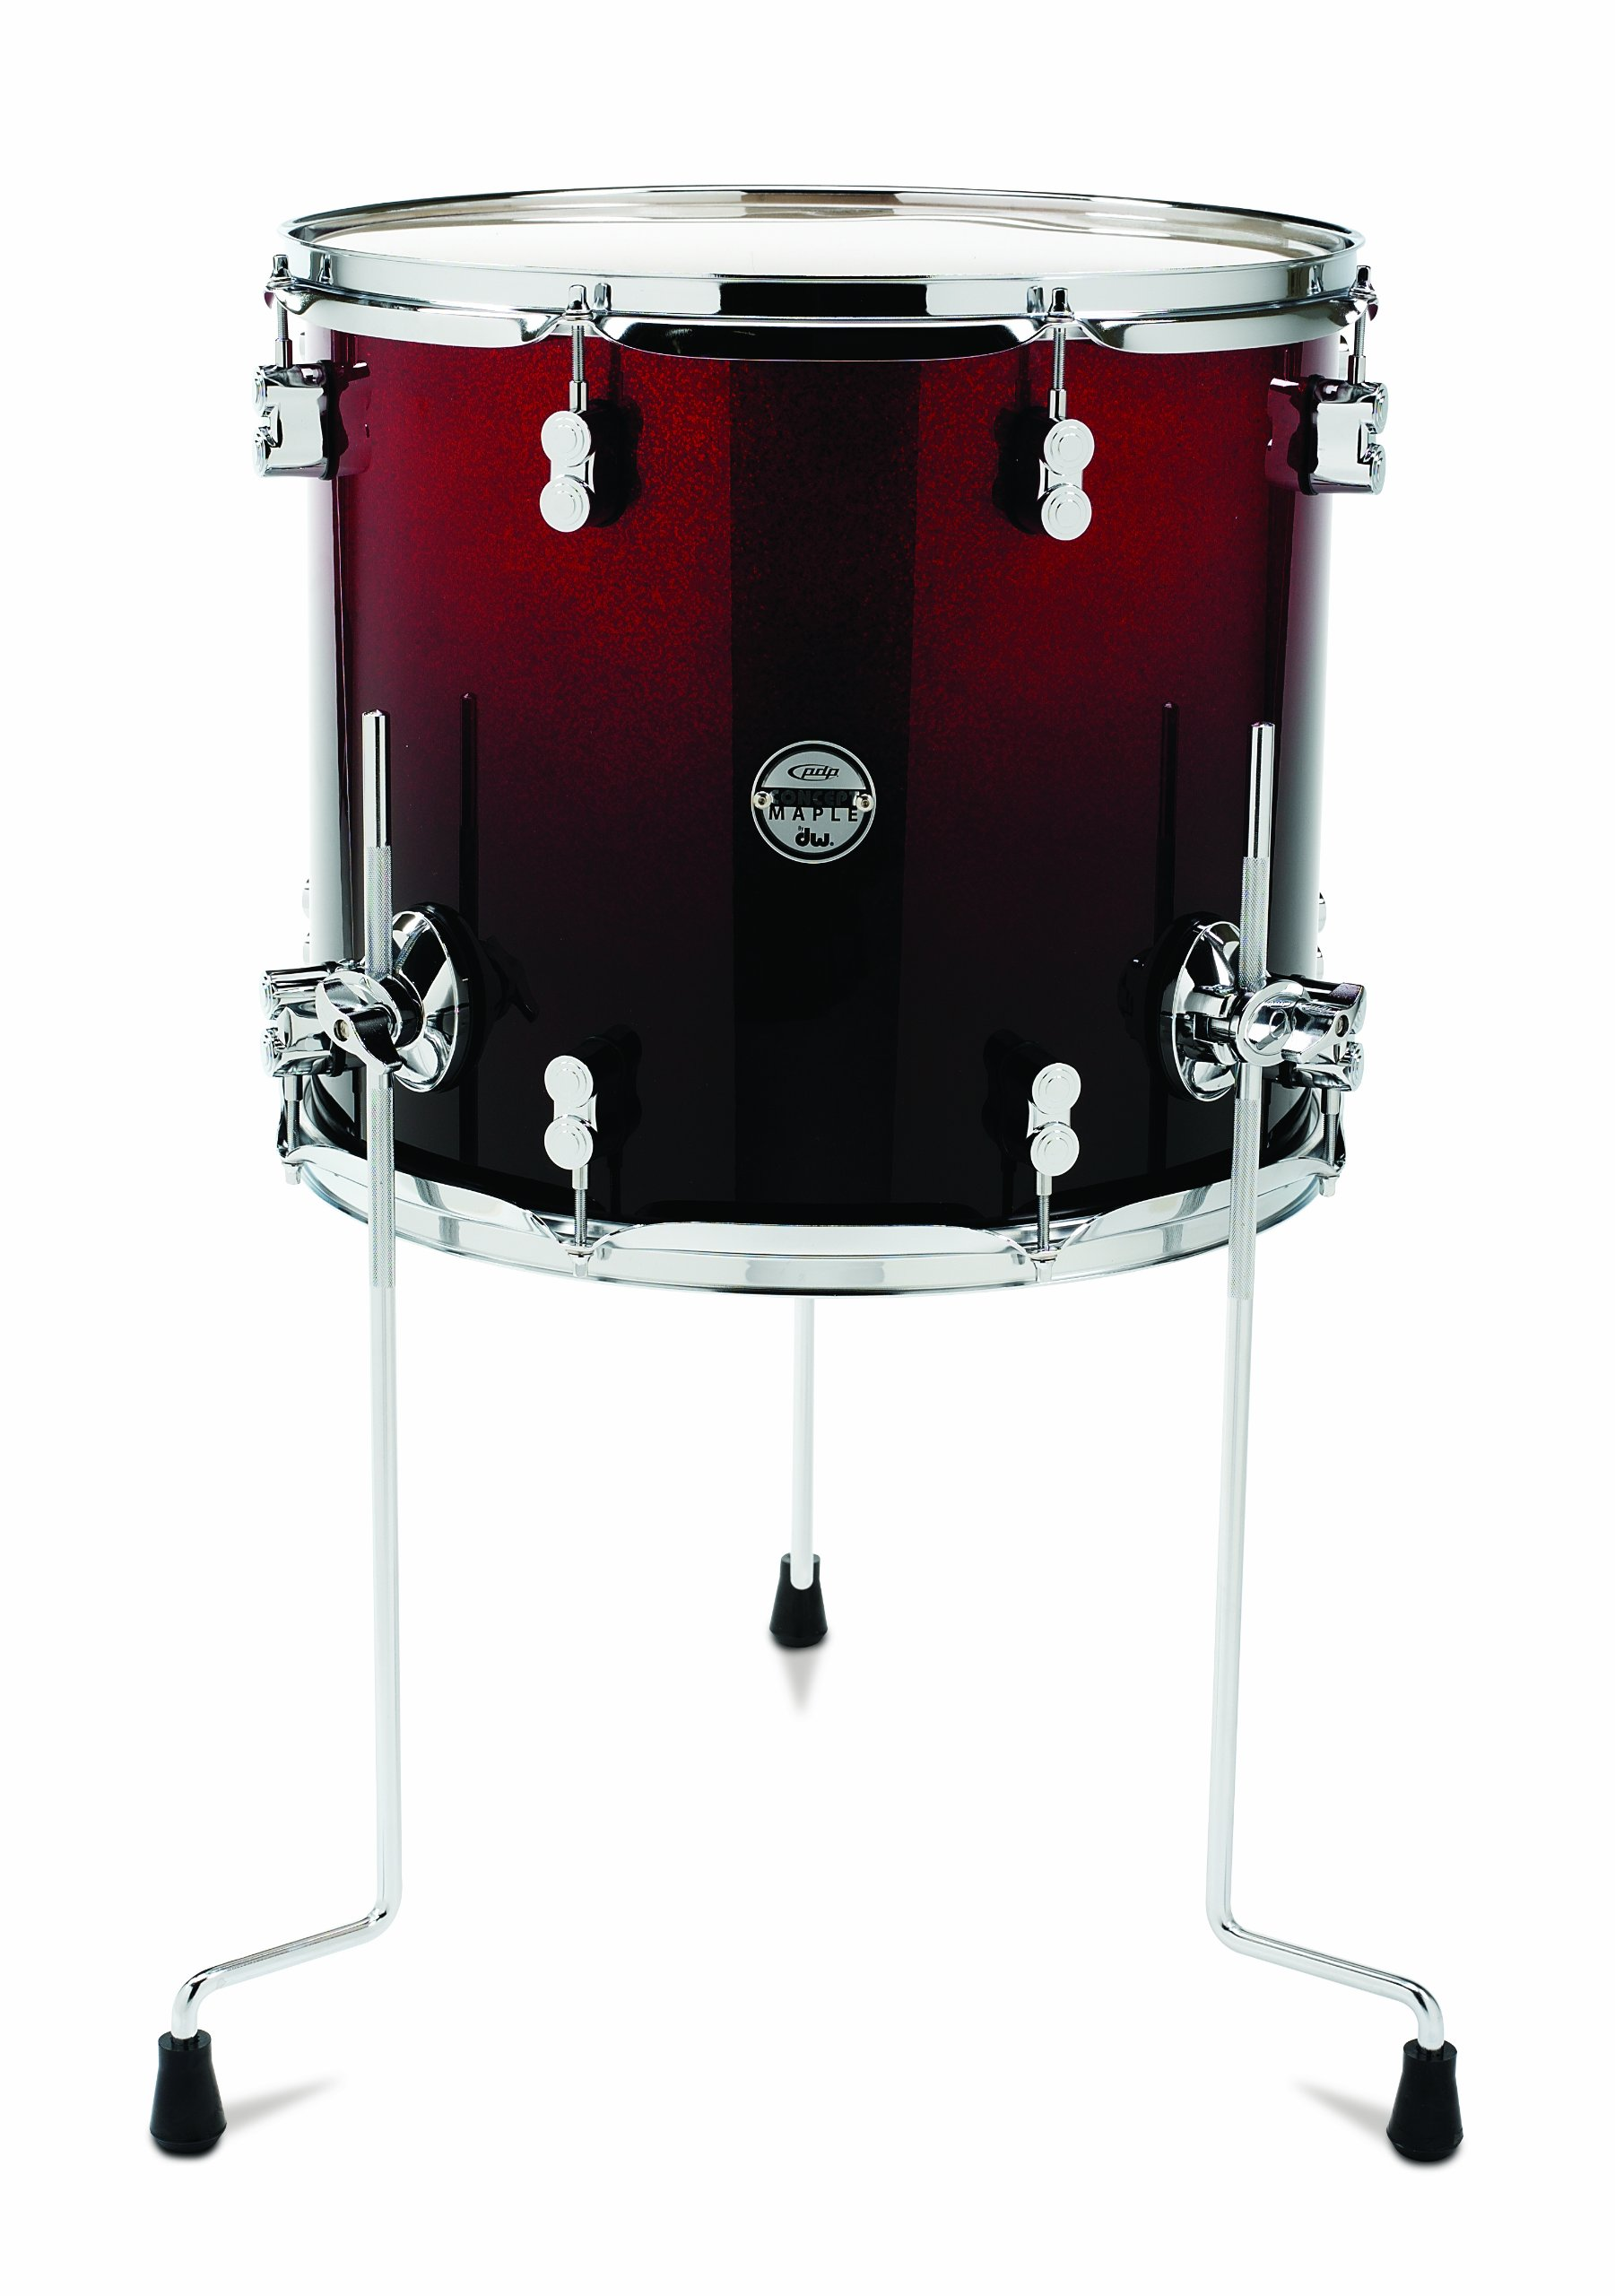 Pacific Drums PDCM1416TTRB 14 x 16 Inches Floor Tom with Chrome Hardware - Red to Black Fade by Pacific Drums